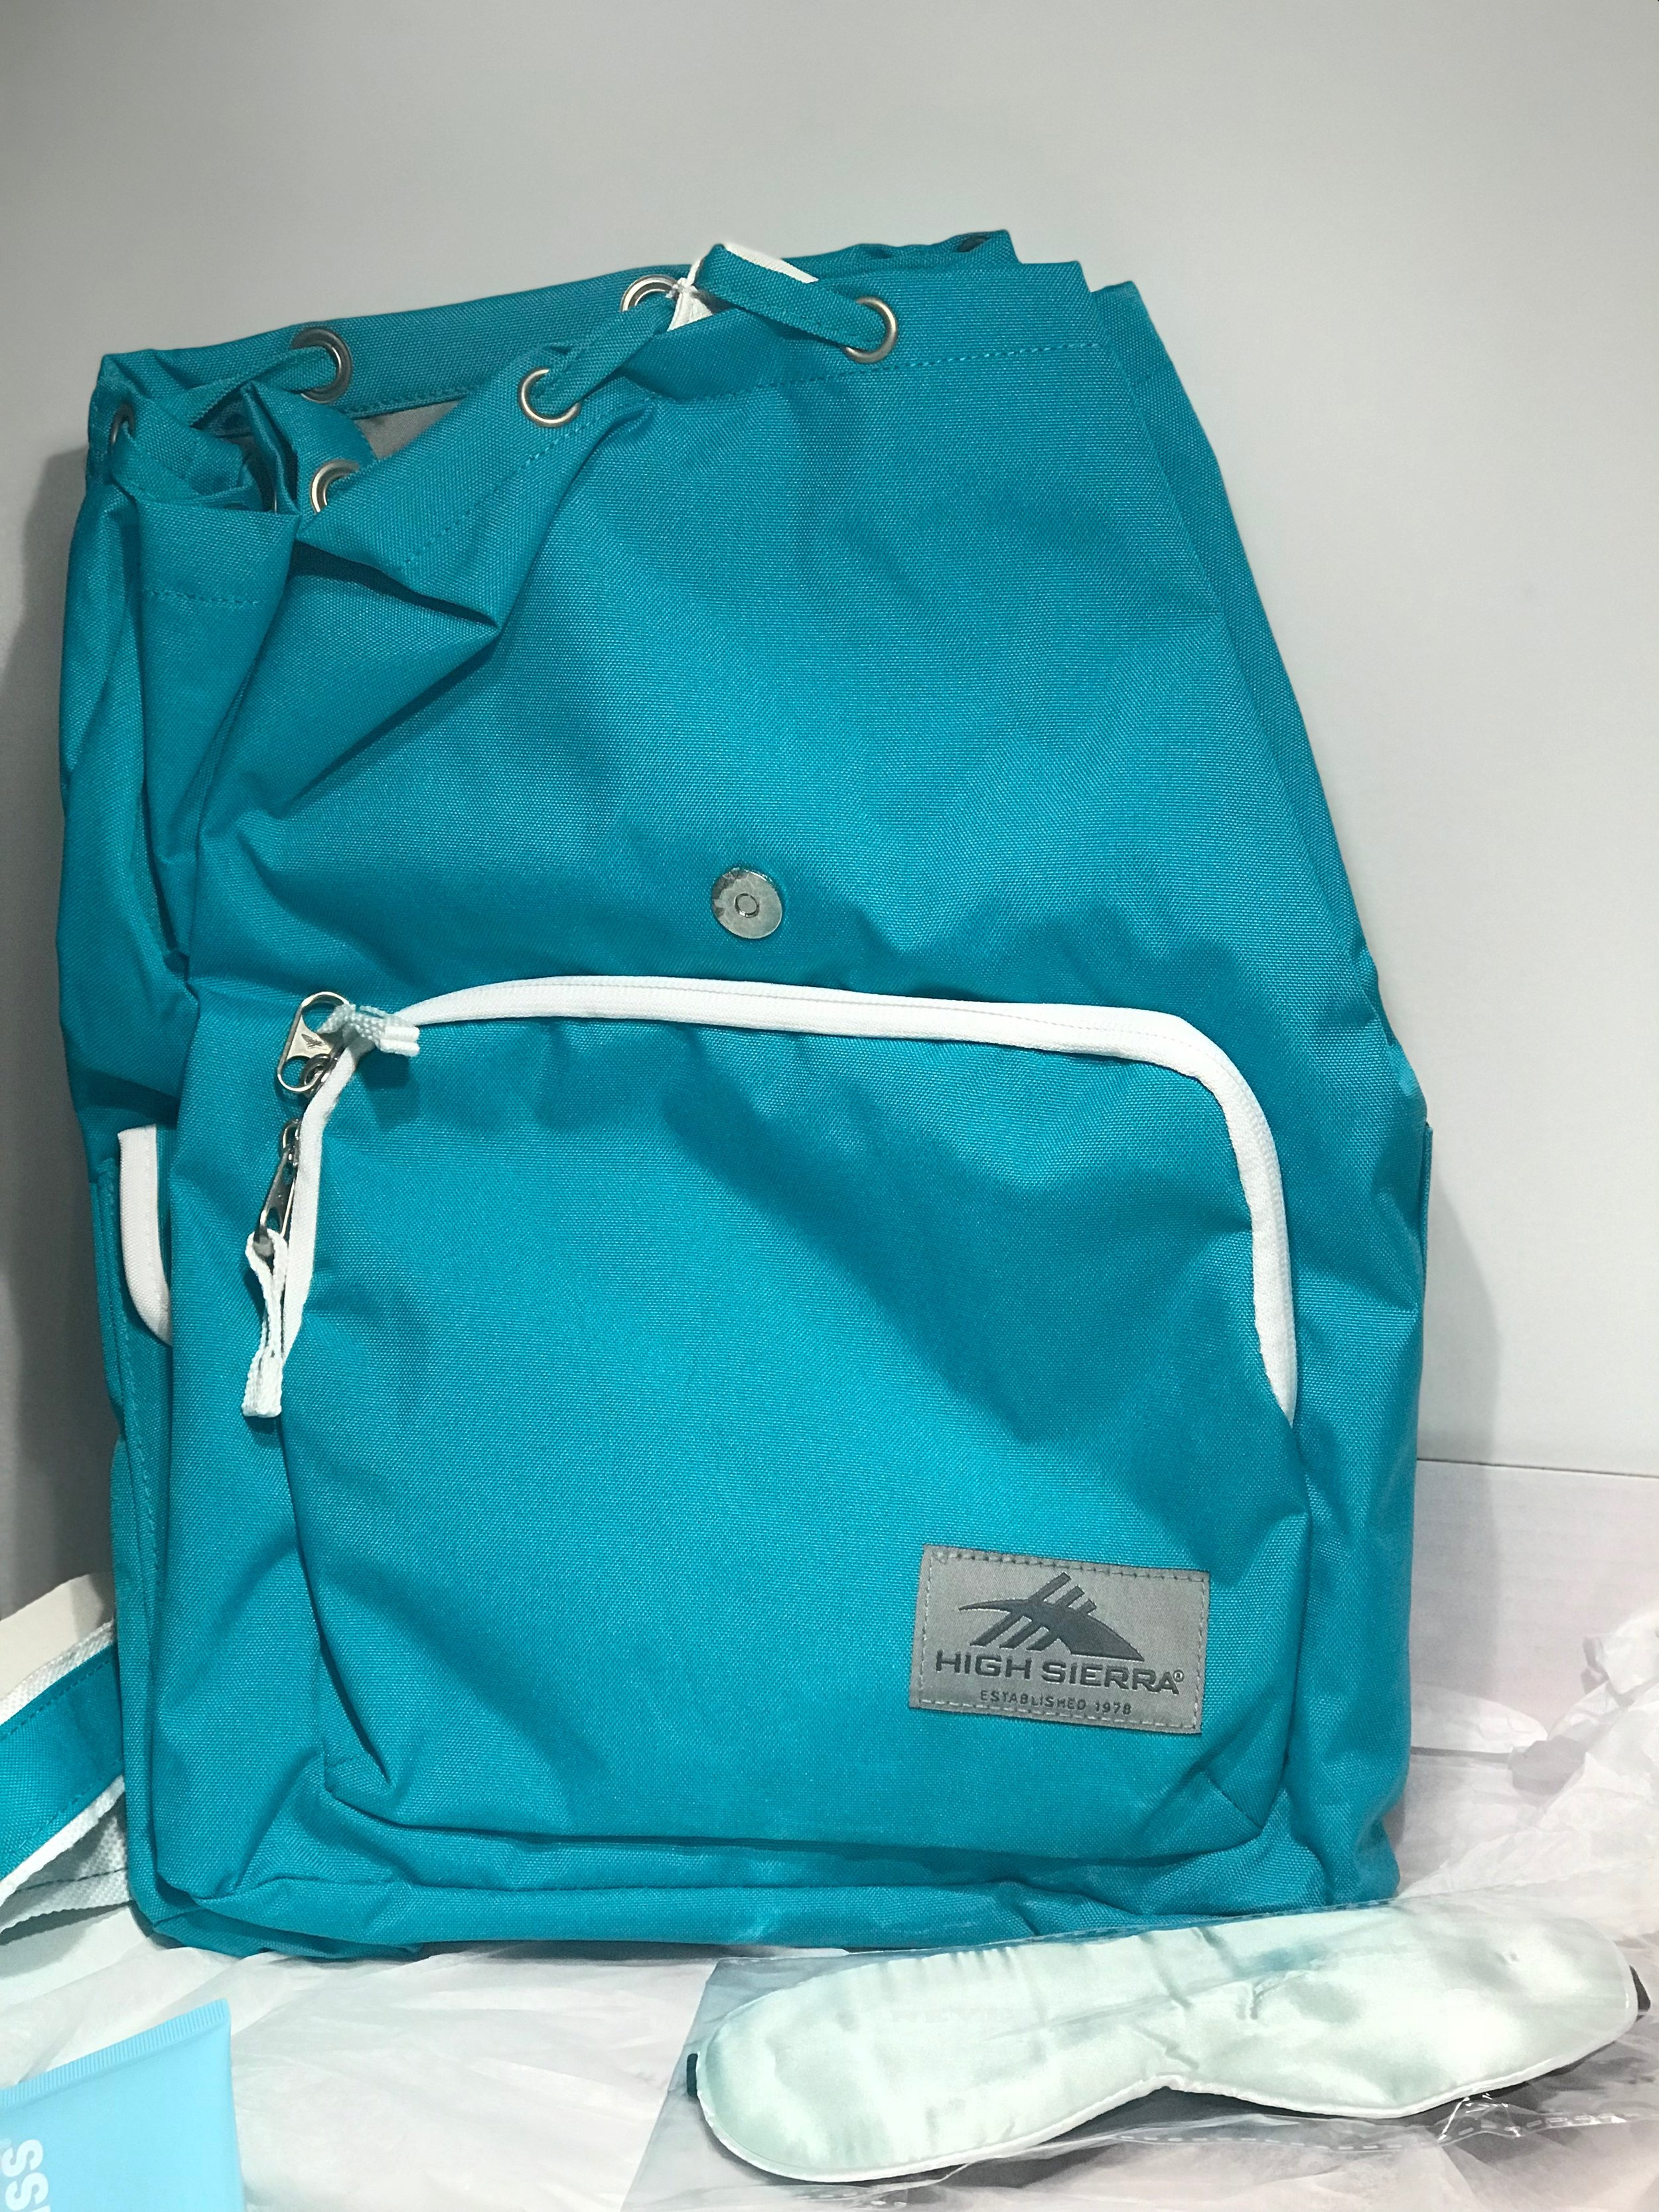 High Sierra Back Pack